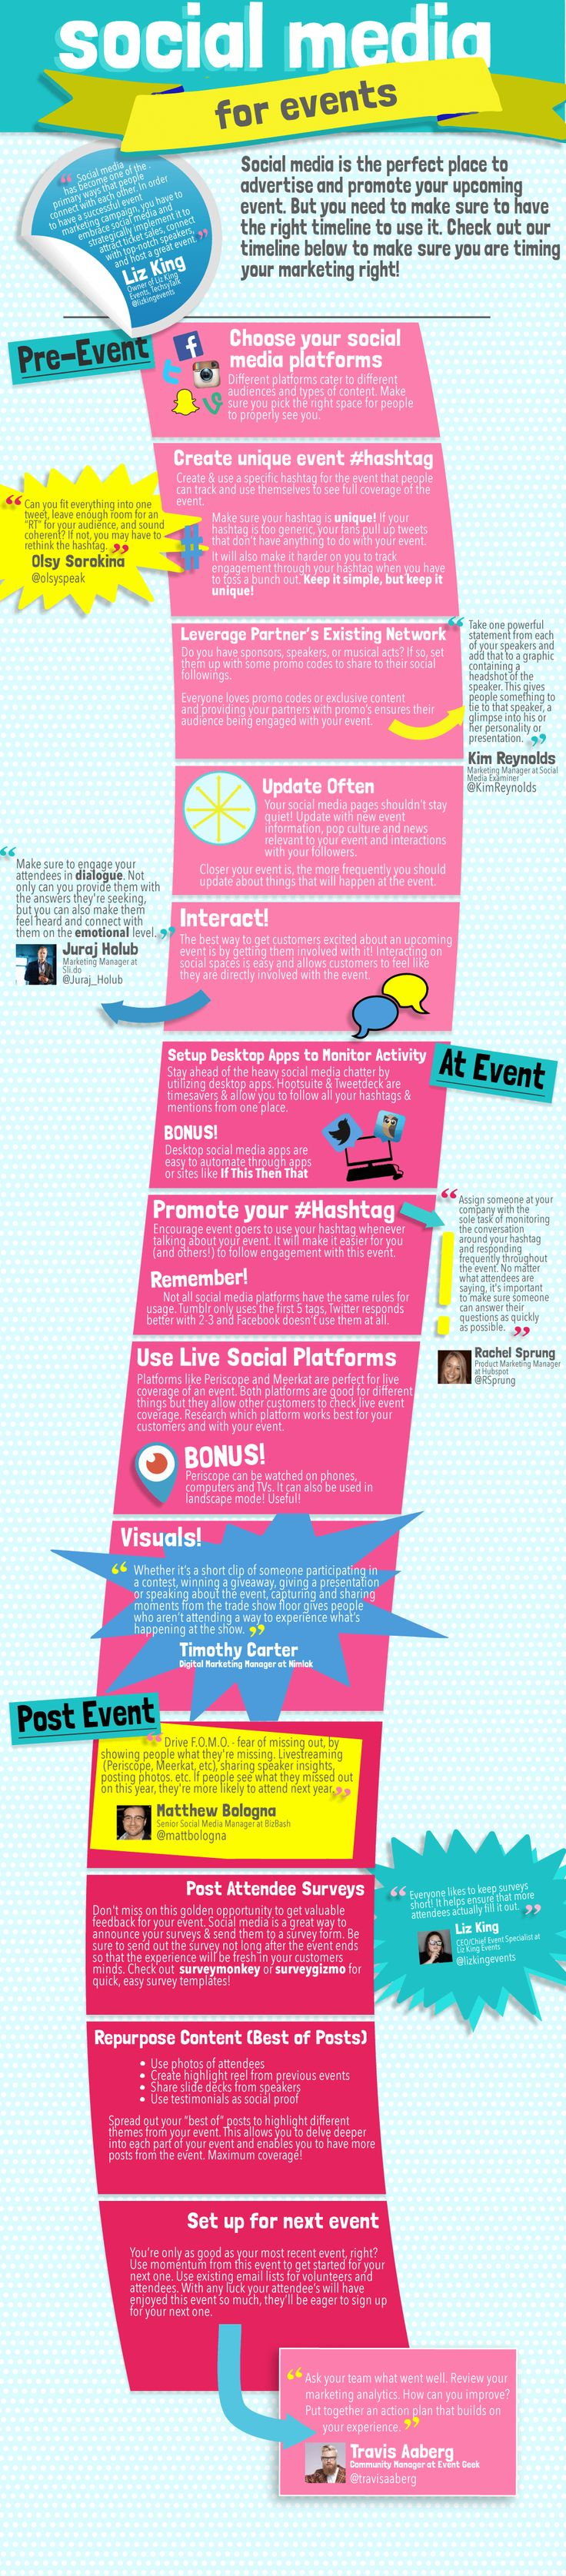 36 best Infographic images on Pinterest